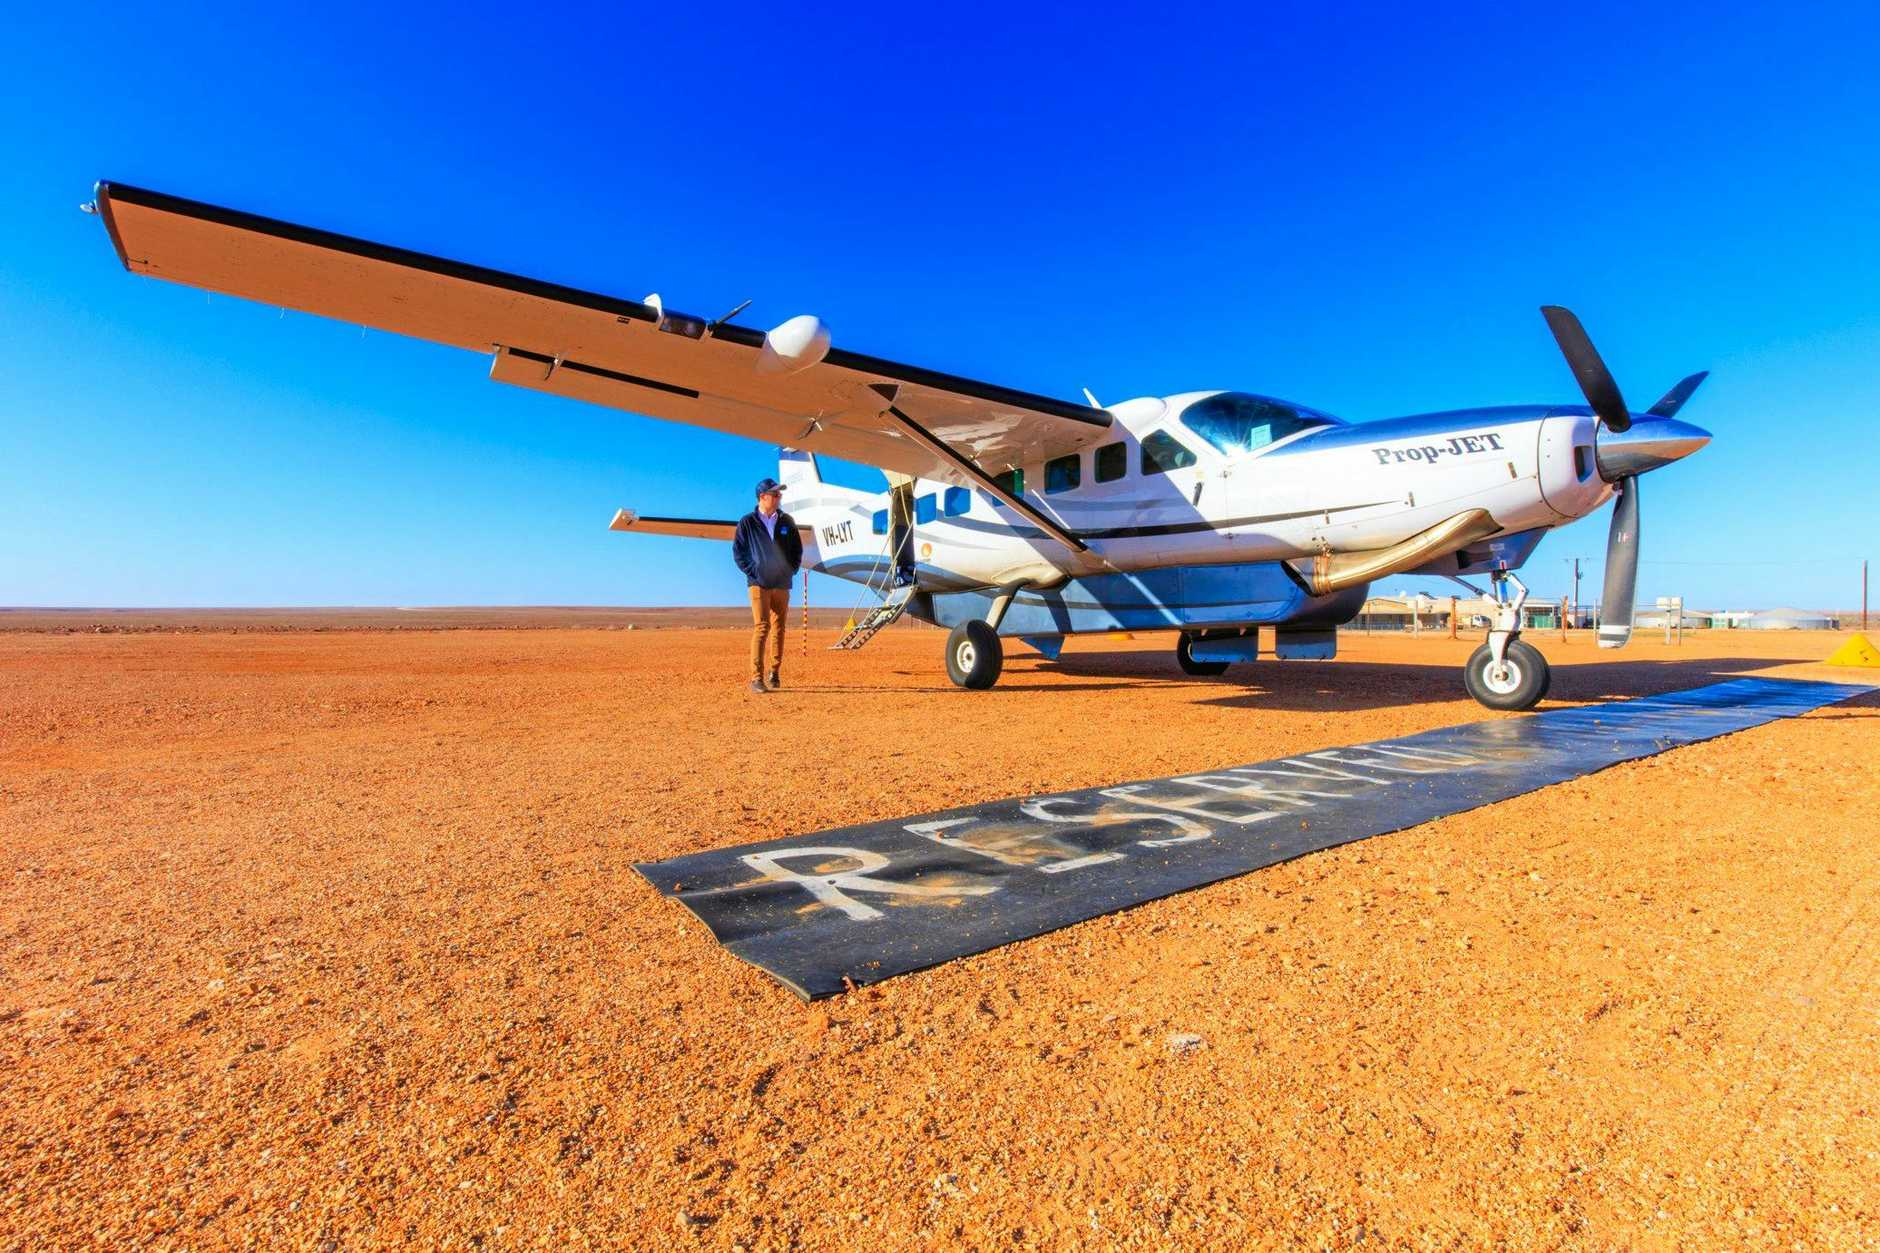 Jules Ingall images for use with her travel copy only (Gold Coast Eye and syndicated papers)Sea Air Aviation on the Gold Coast are offering outback tours in the comfort of a 14-seater Cessna Caravan airplane.